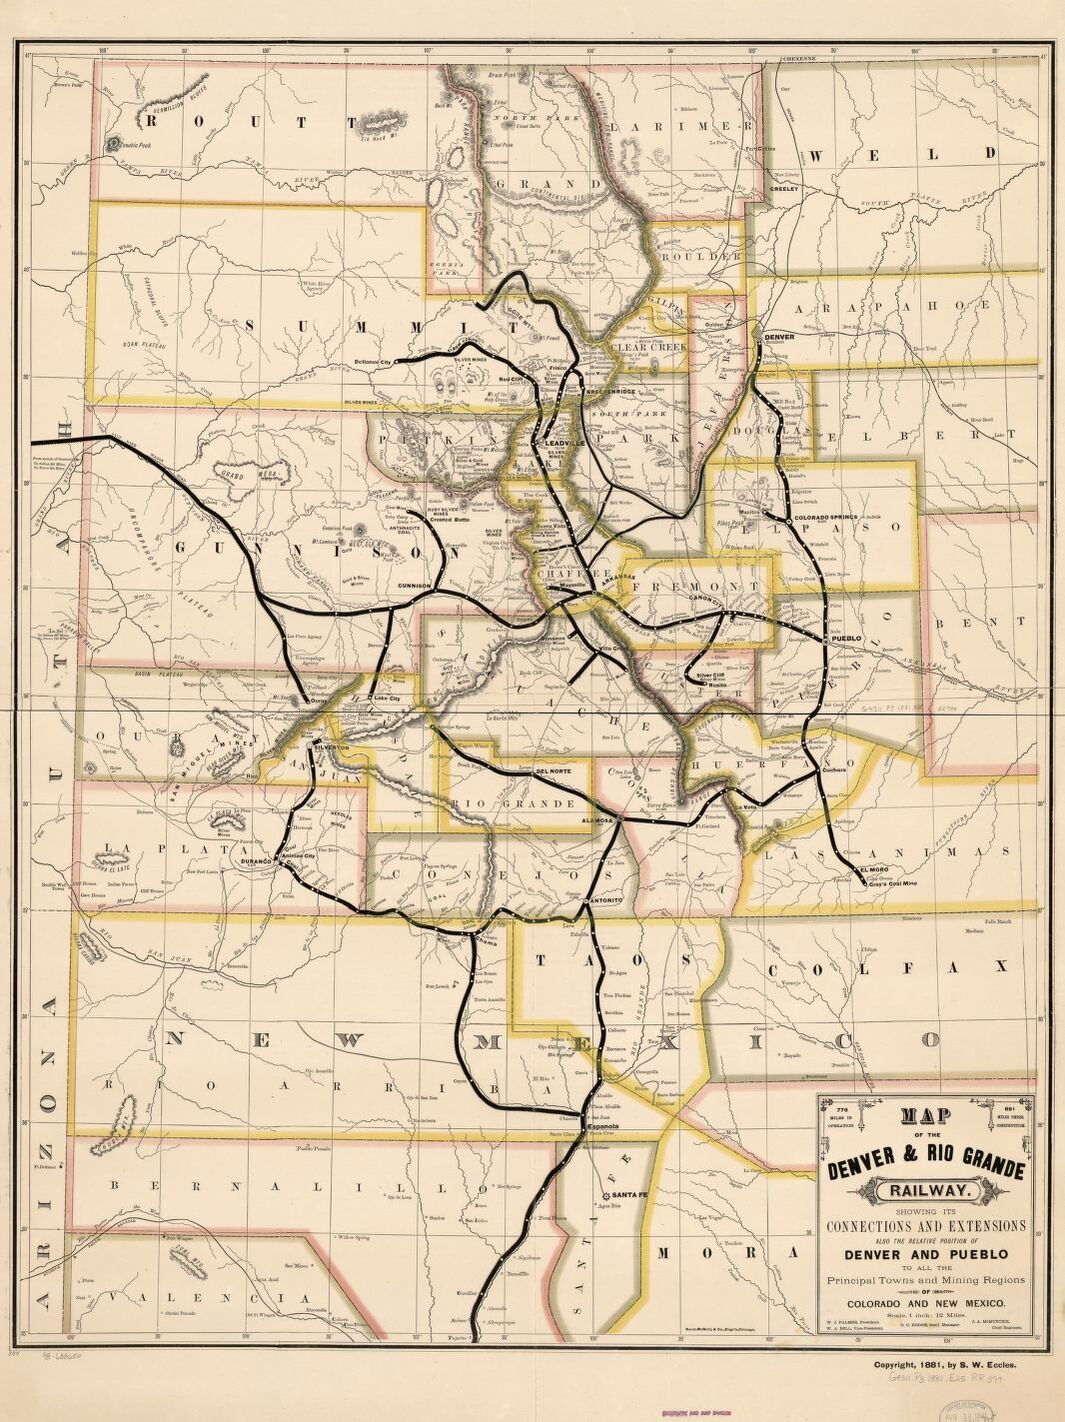 This map of the Denver & Rio Grande Railway was created in 1881. In addition to rail lines, it shows the mining regions, towns, and military forts, including Fort Garland (to the right of Alamosa).